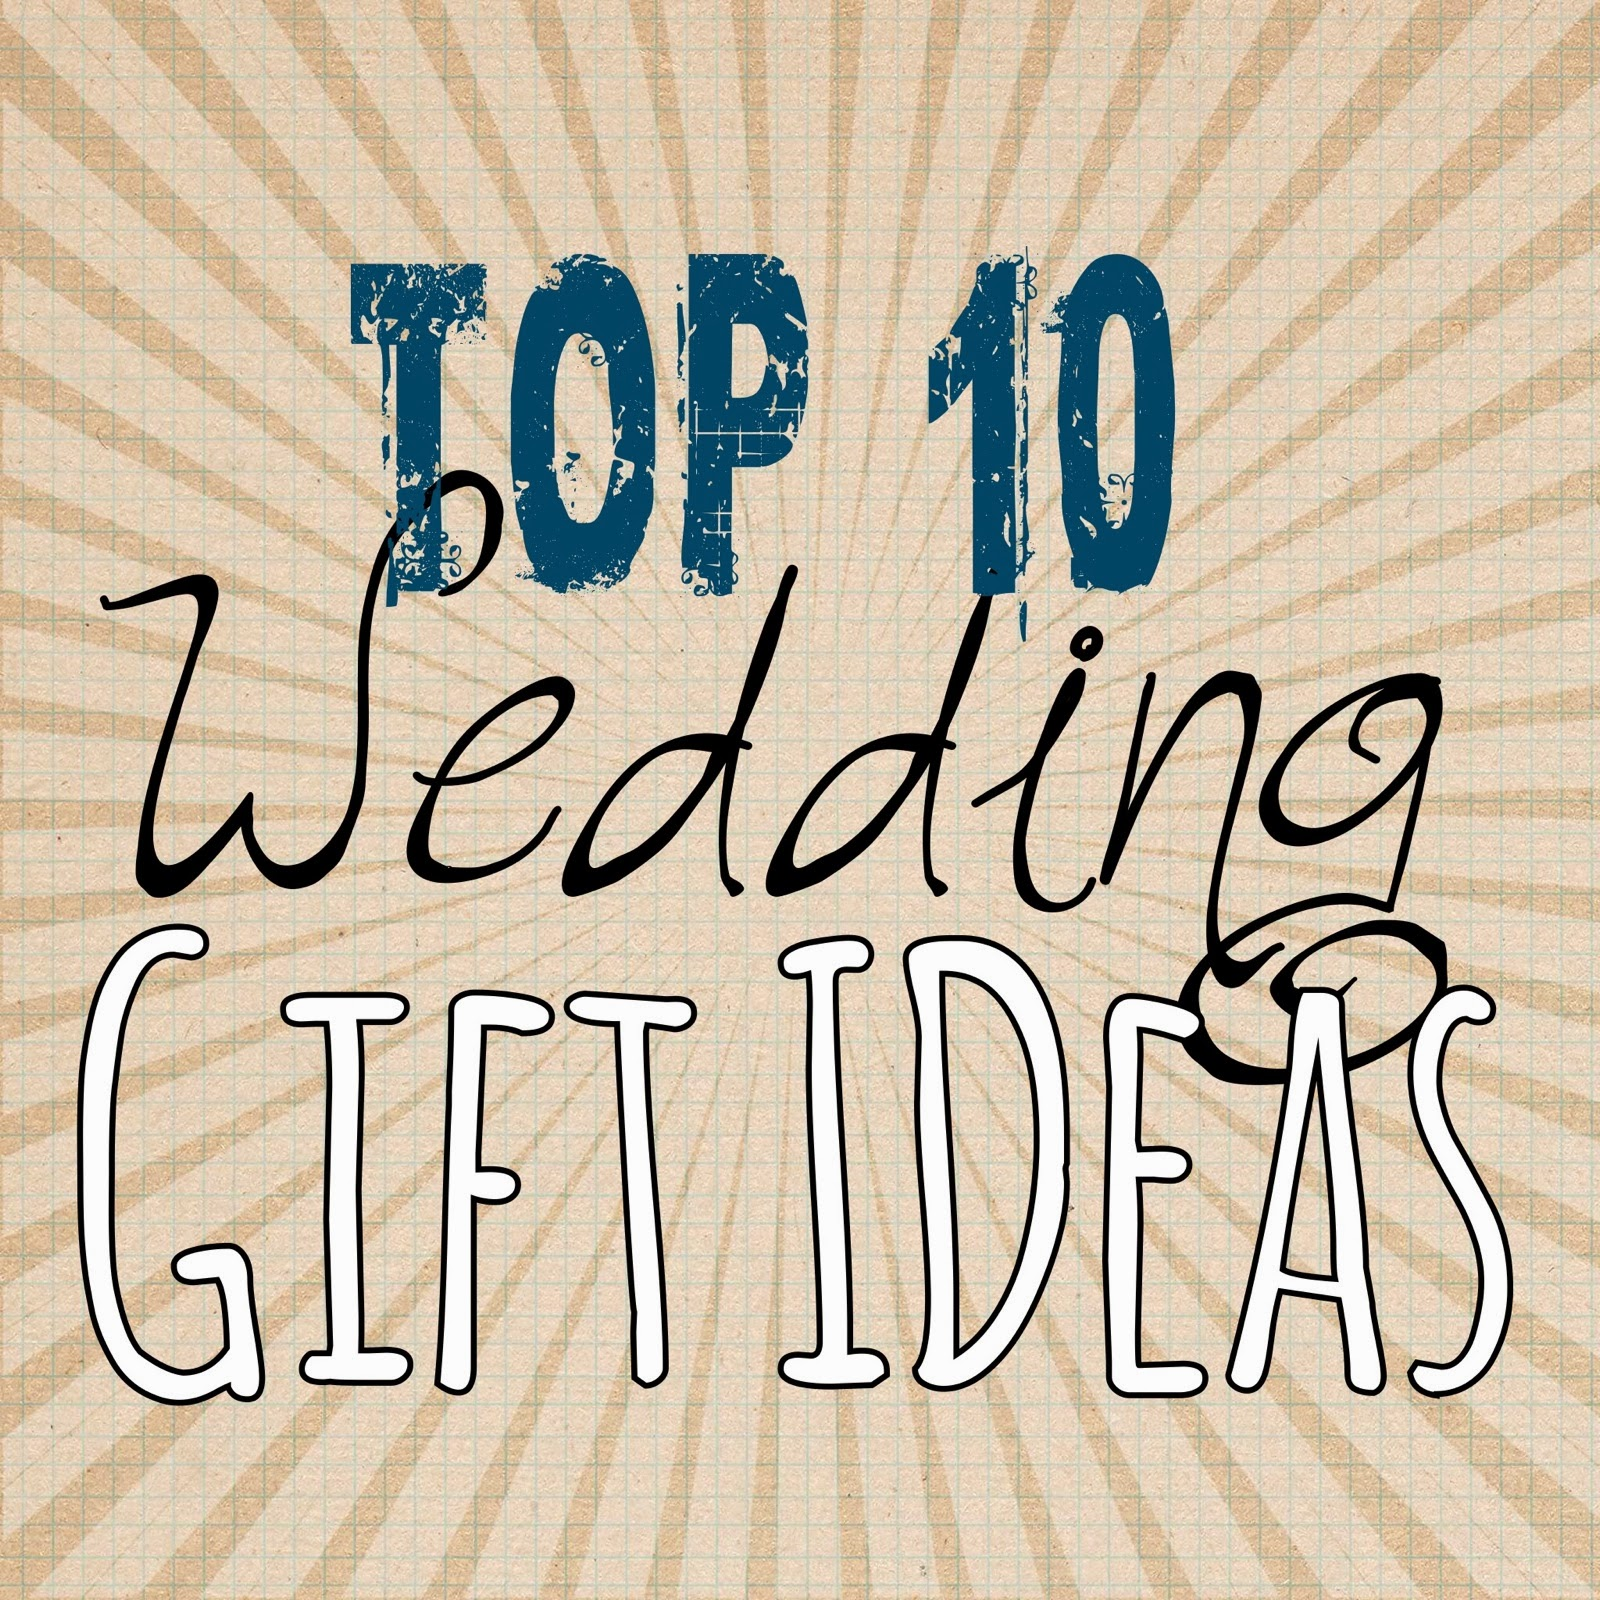 Great Wedding Gift Ideas: Top 10 Wedding Gift Ideas